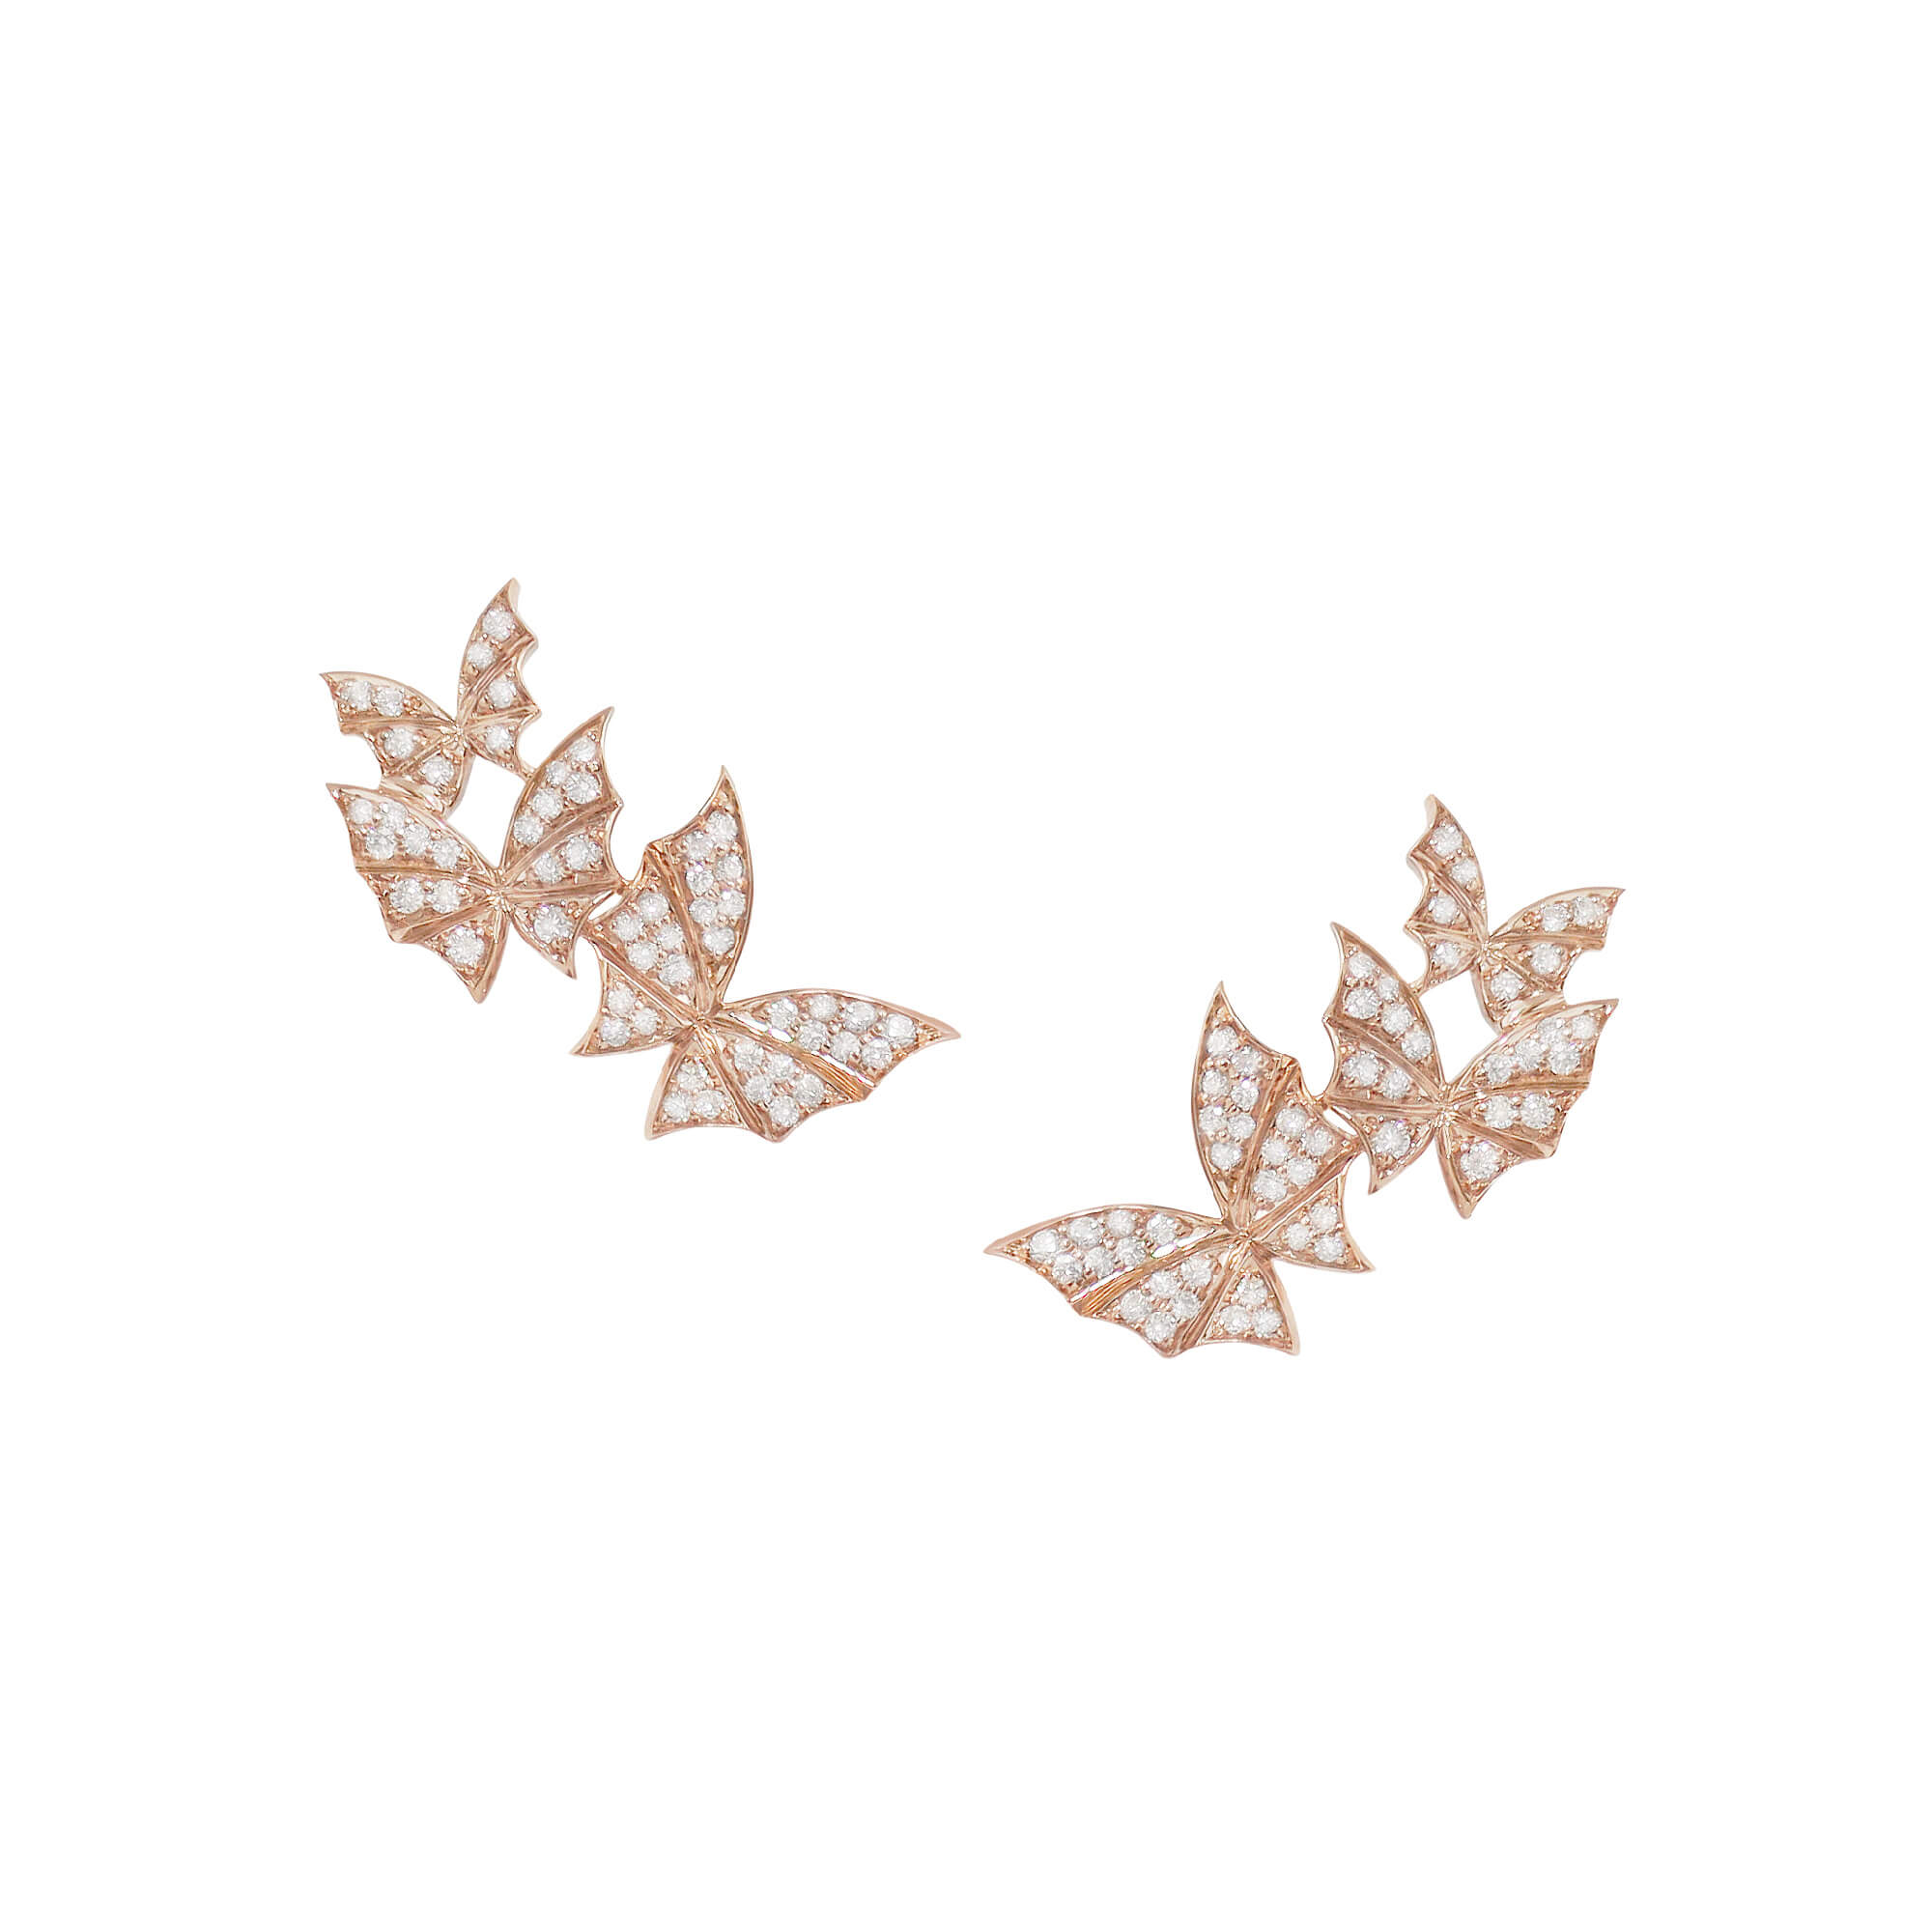 Rose Gold & White Diamond Triple Earrings | Fly By Night